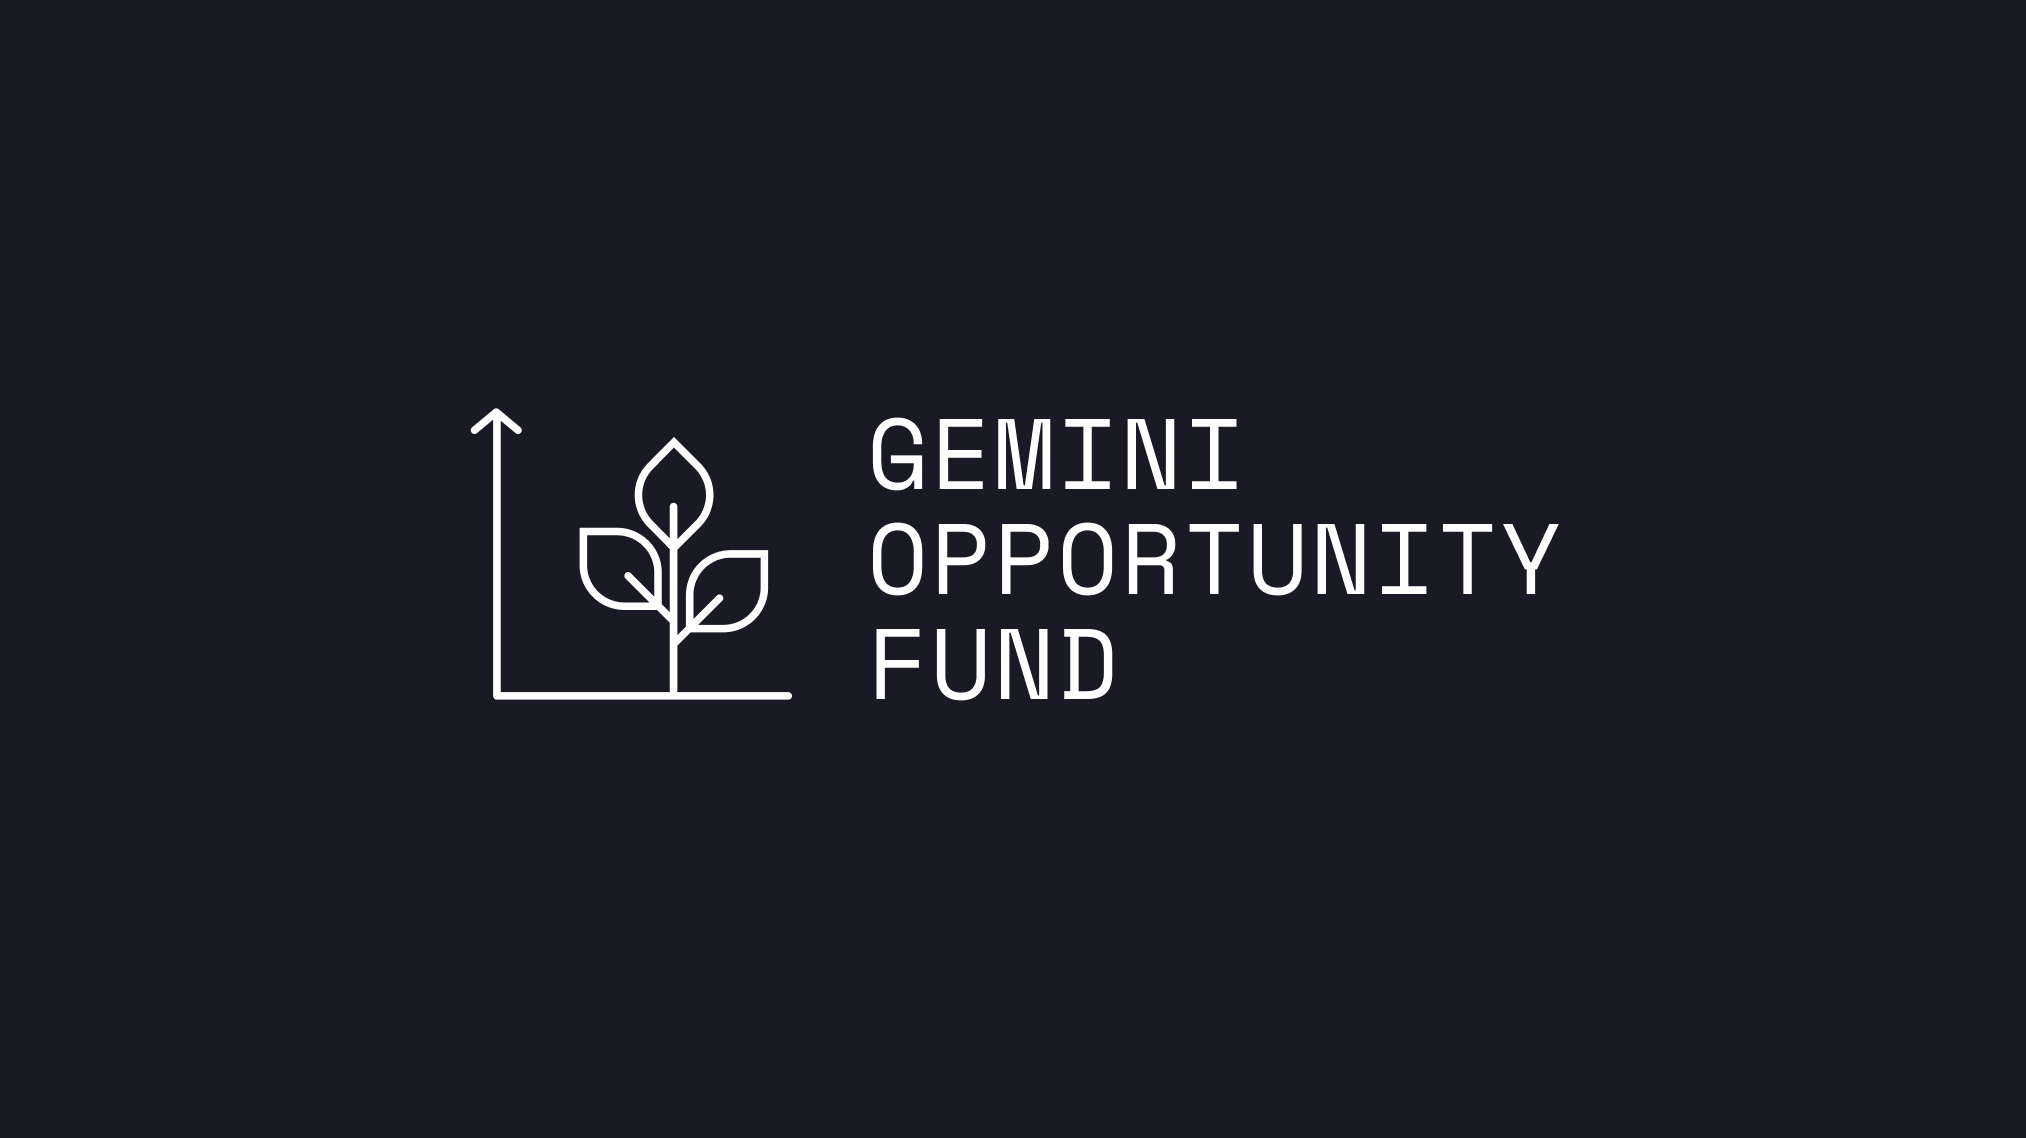 Gemini Opportunity Fund Donates to MIT's Digital Currency Initiative